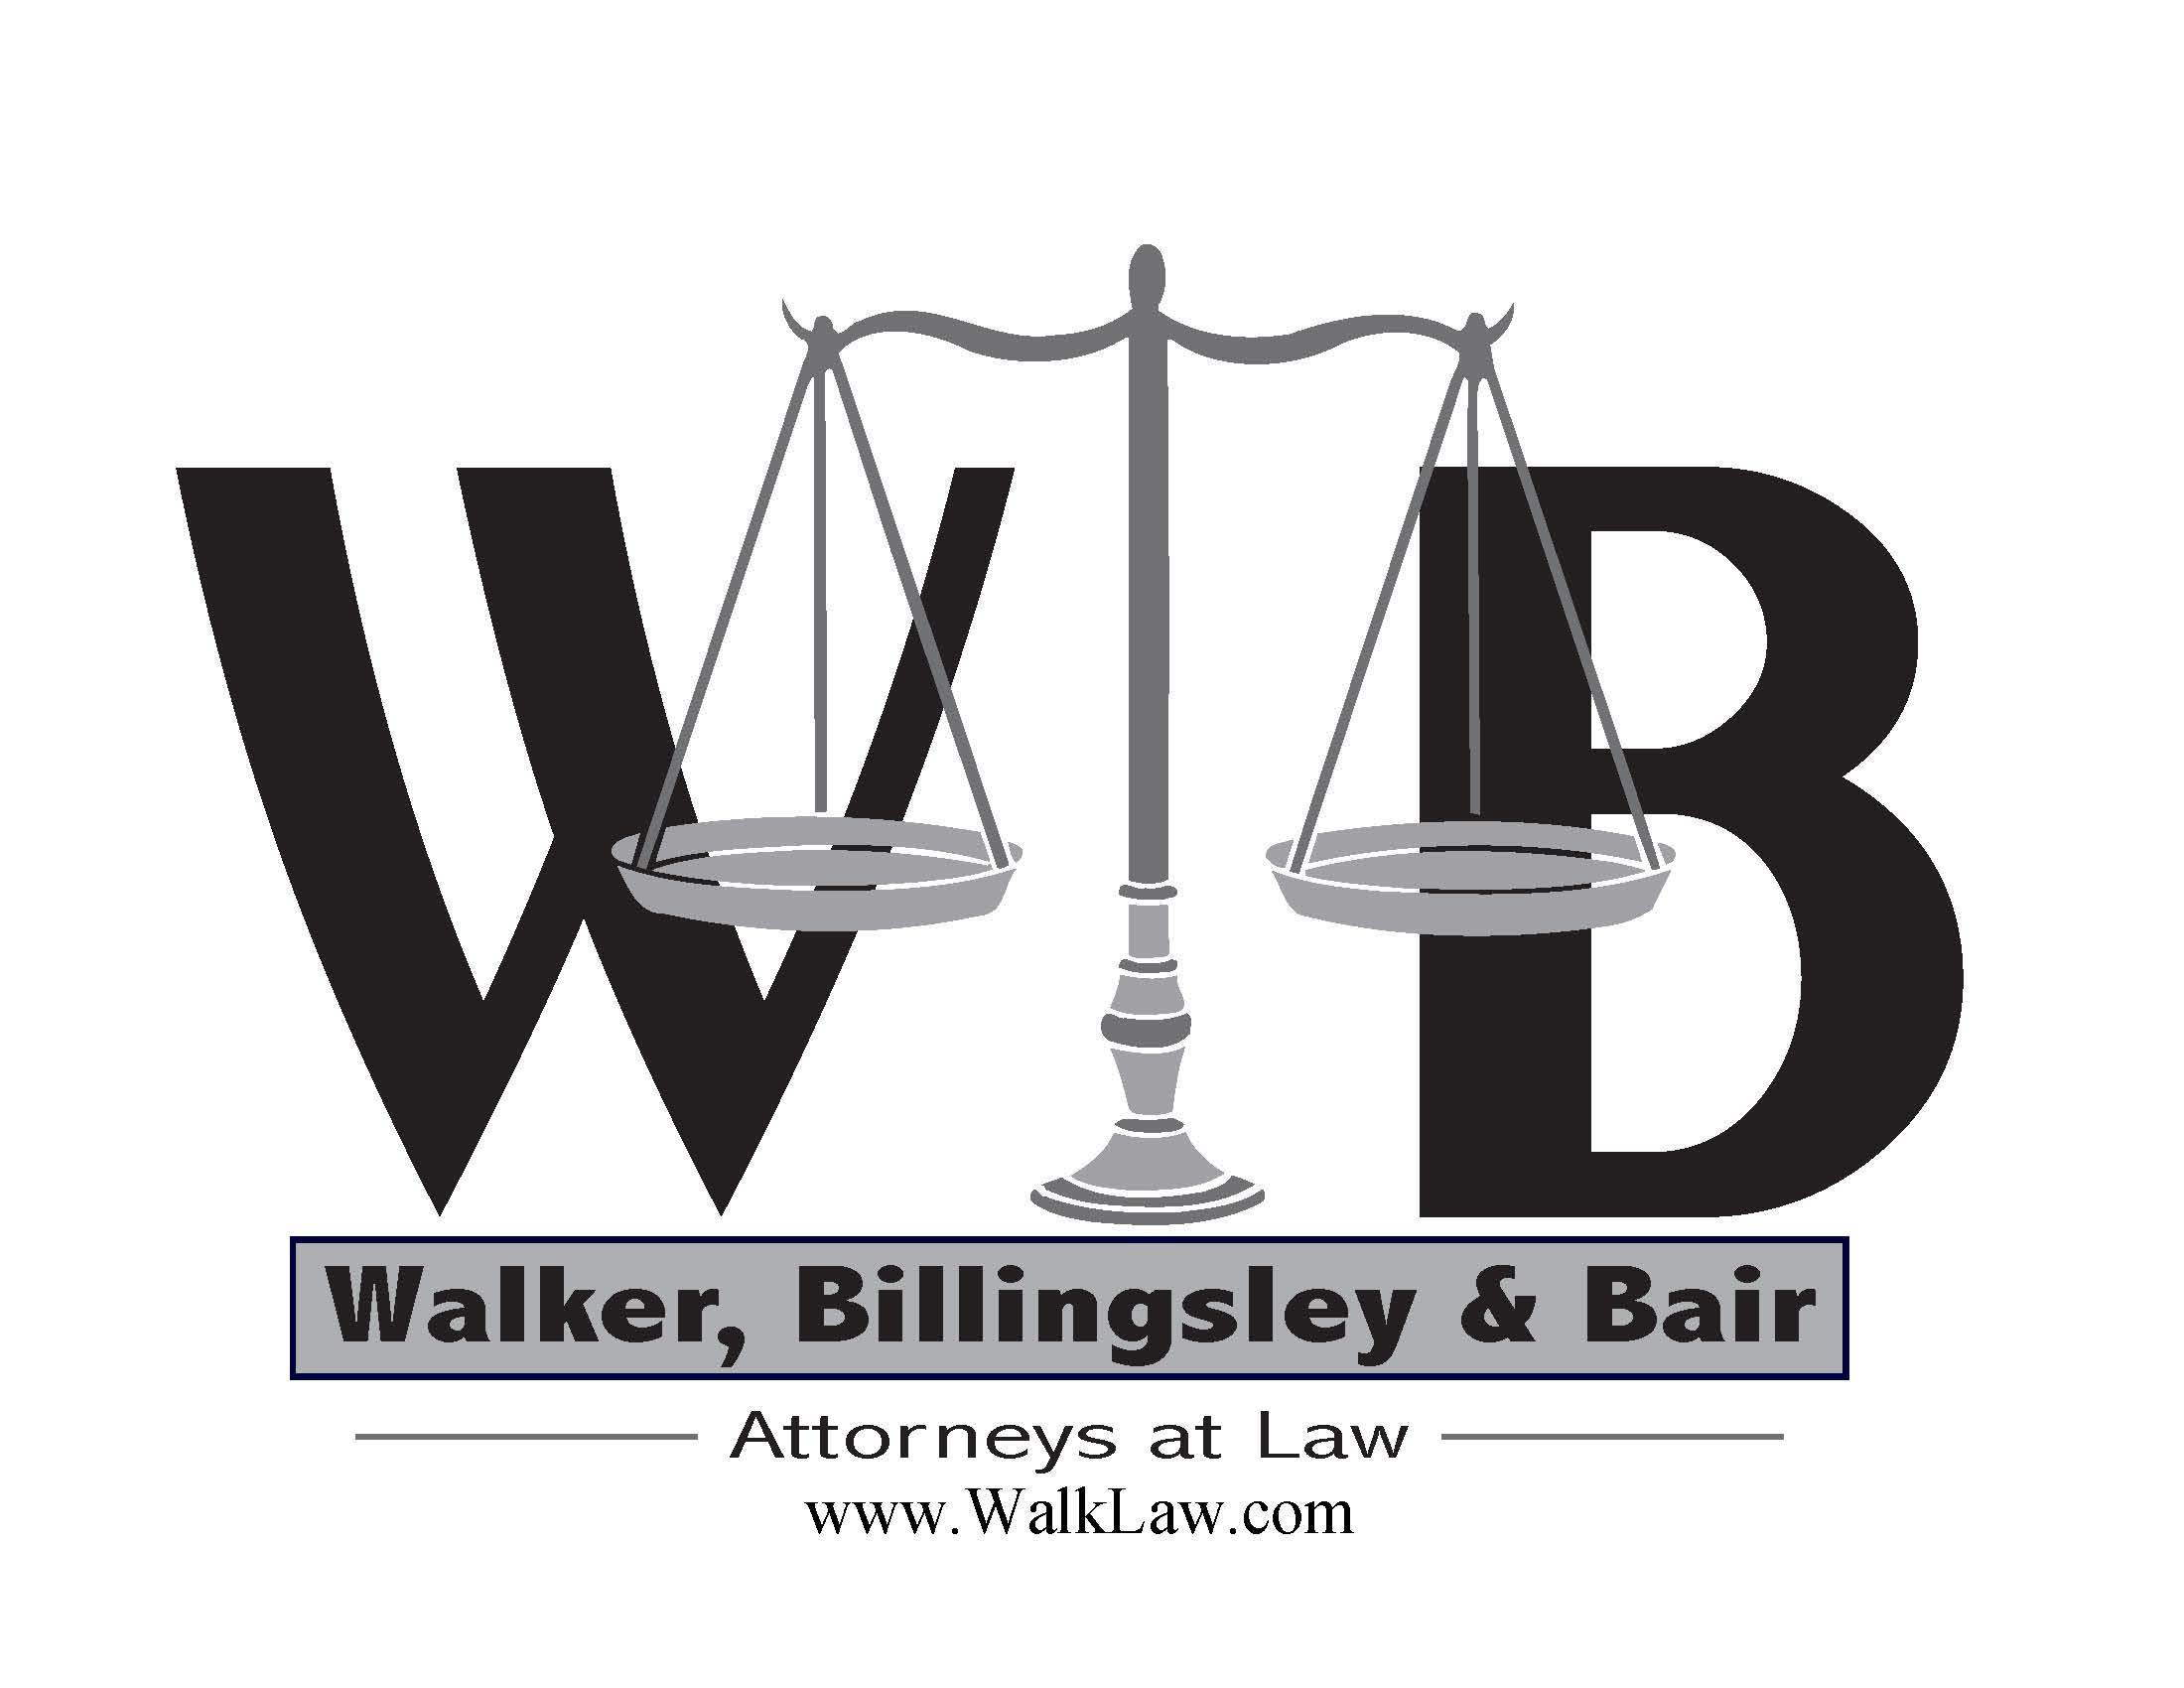 Walker, Billingsley & Bair